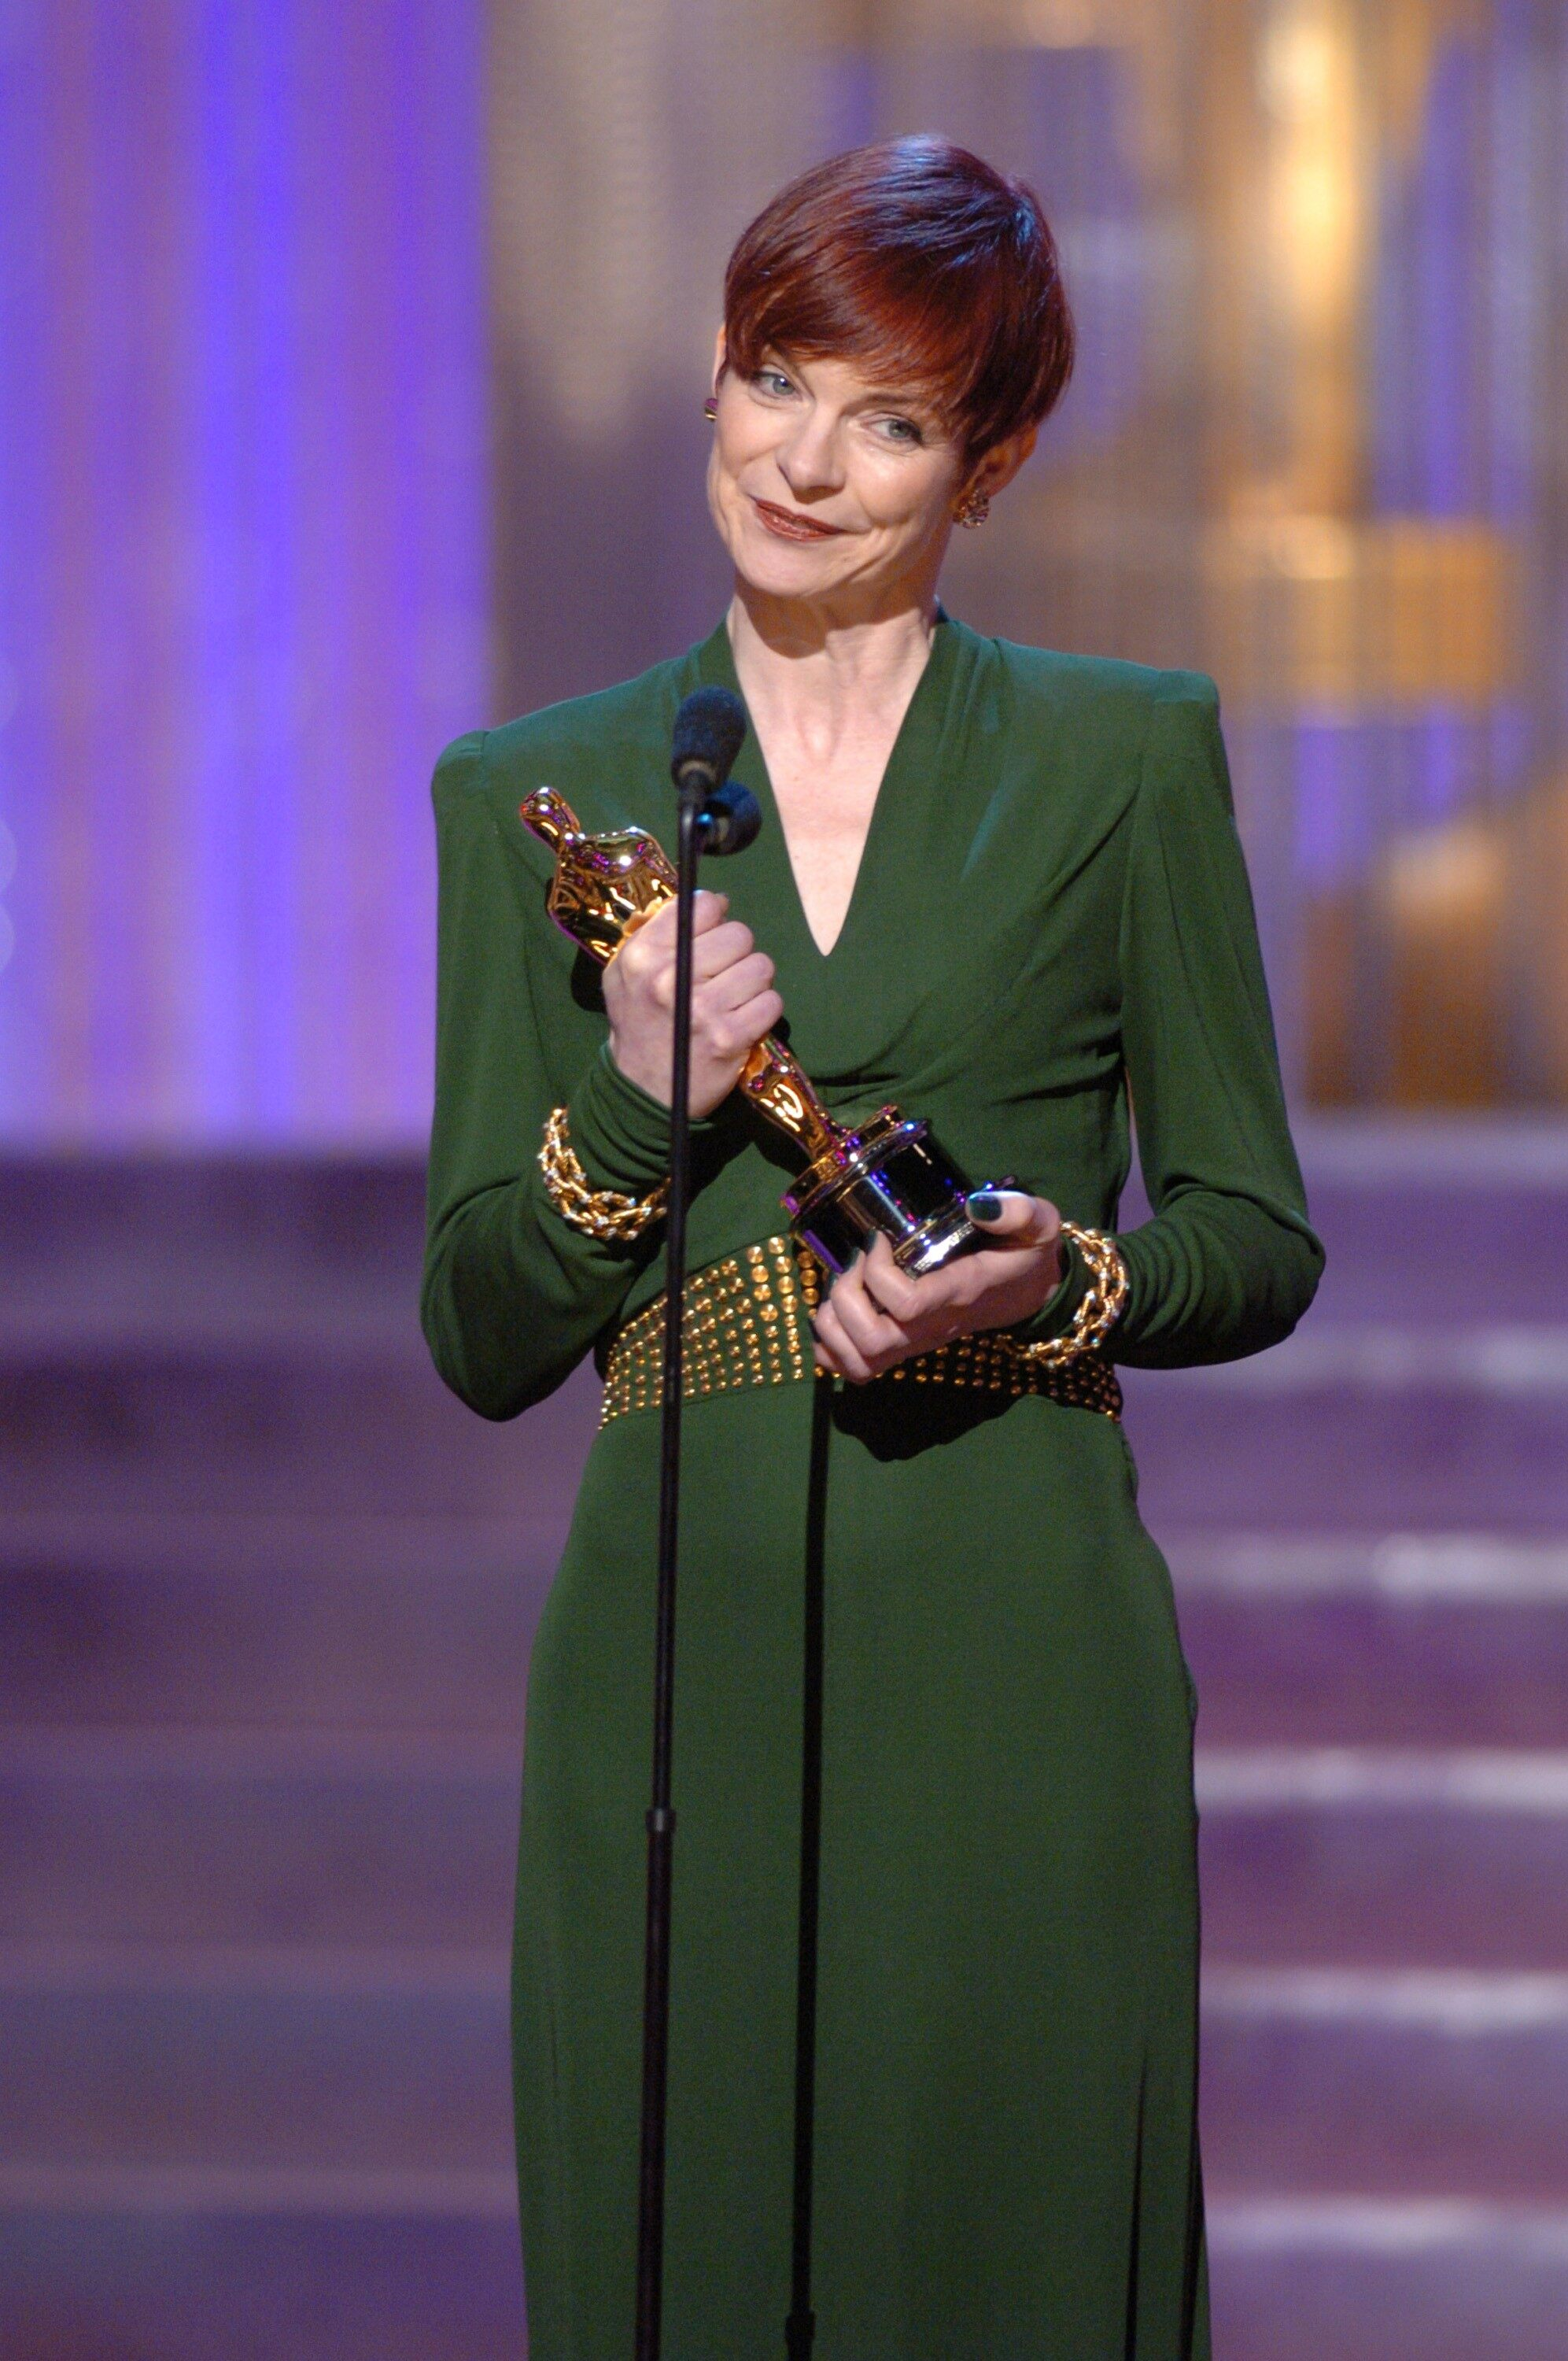 Sandy Powell accepts the Academy Award for Achievement in Costume Design.